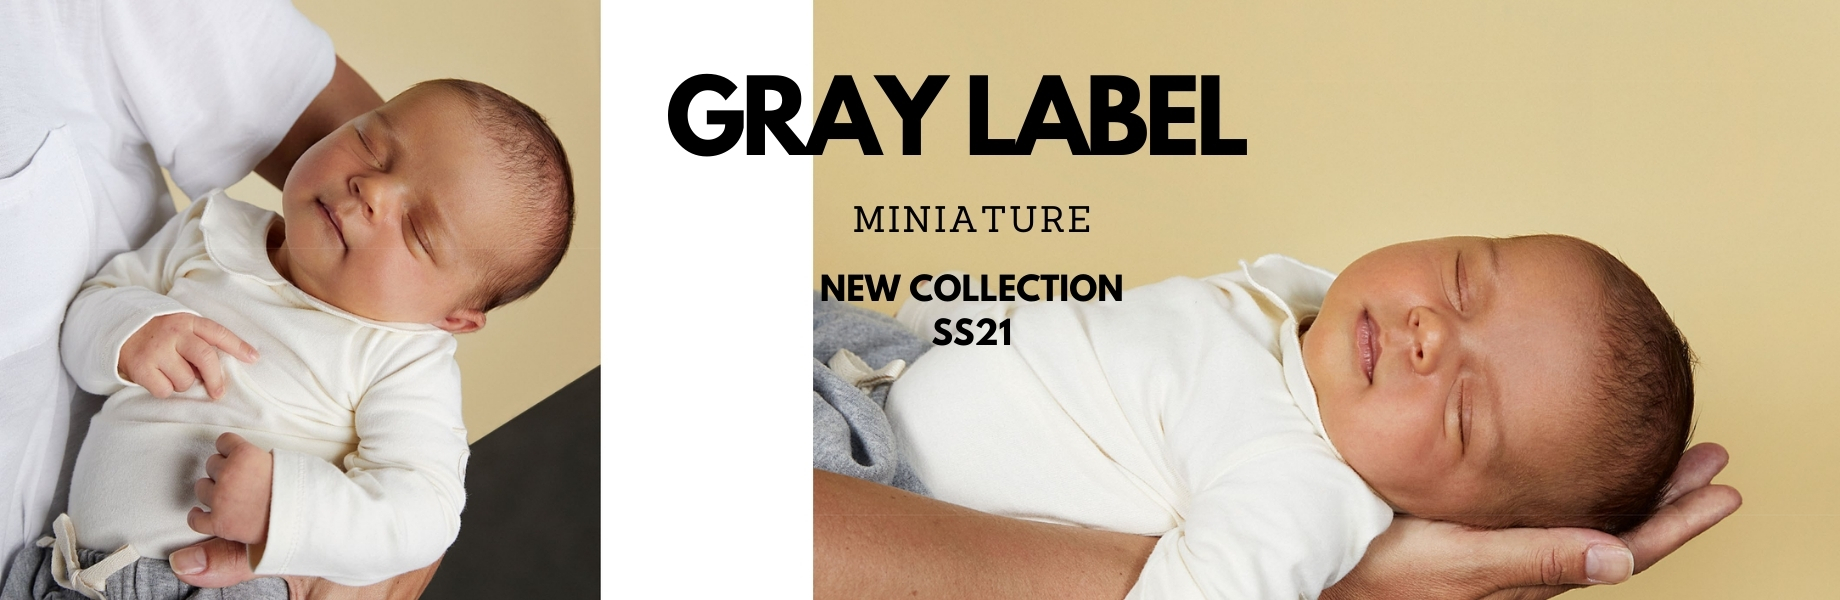 Gray Labe SS21 miniature